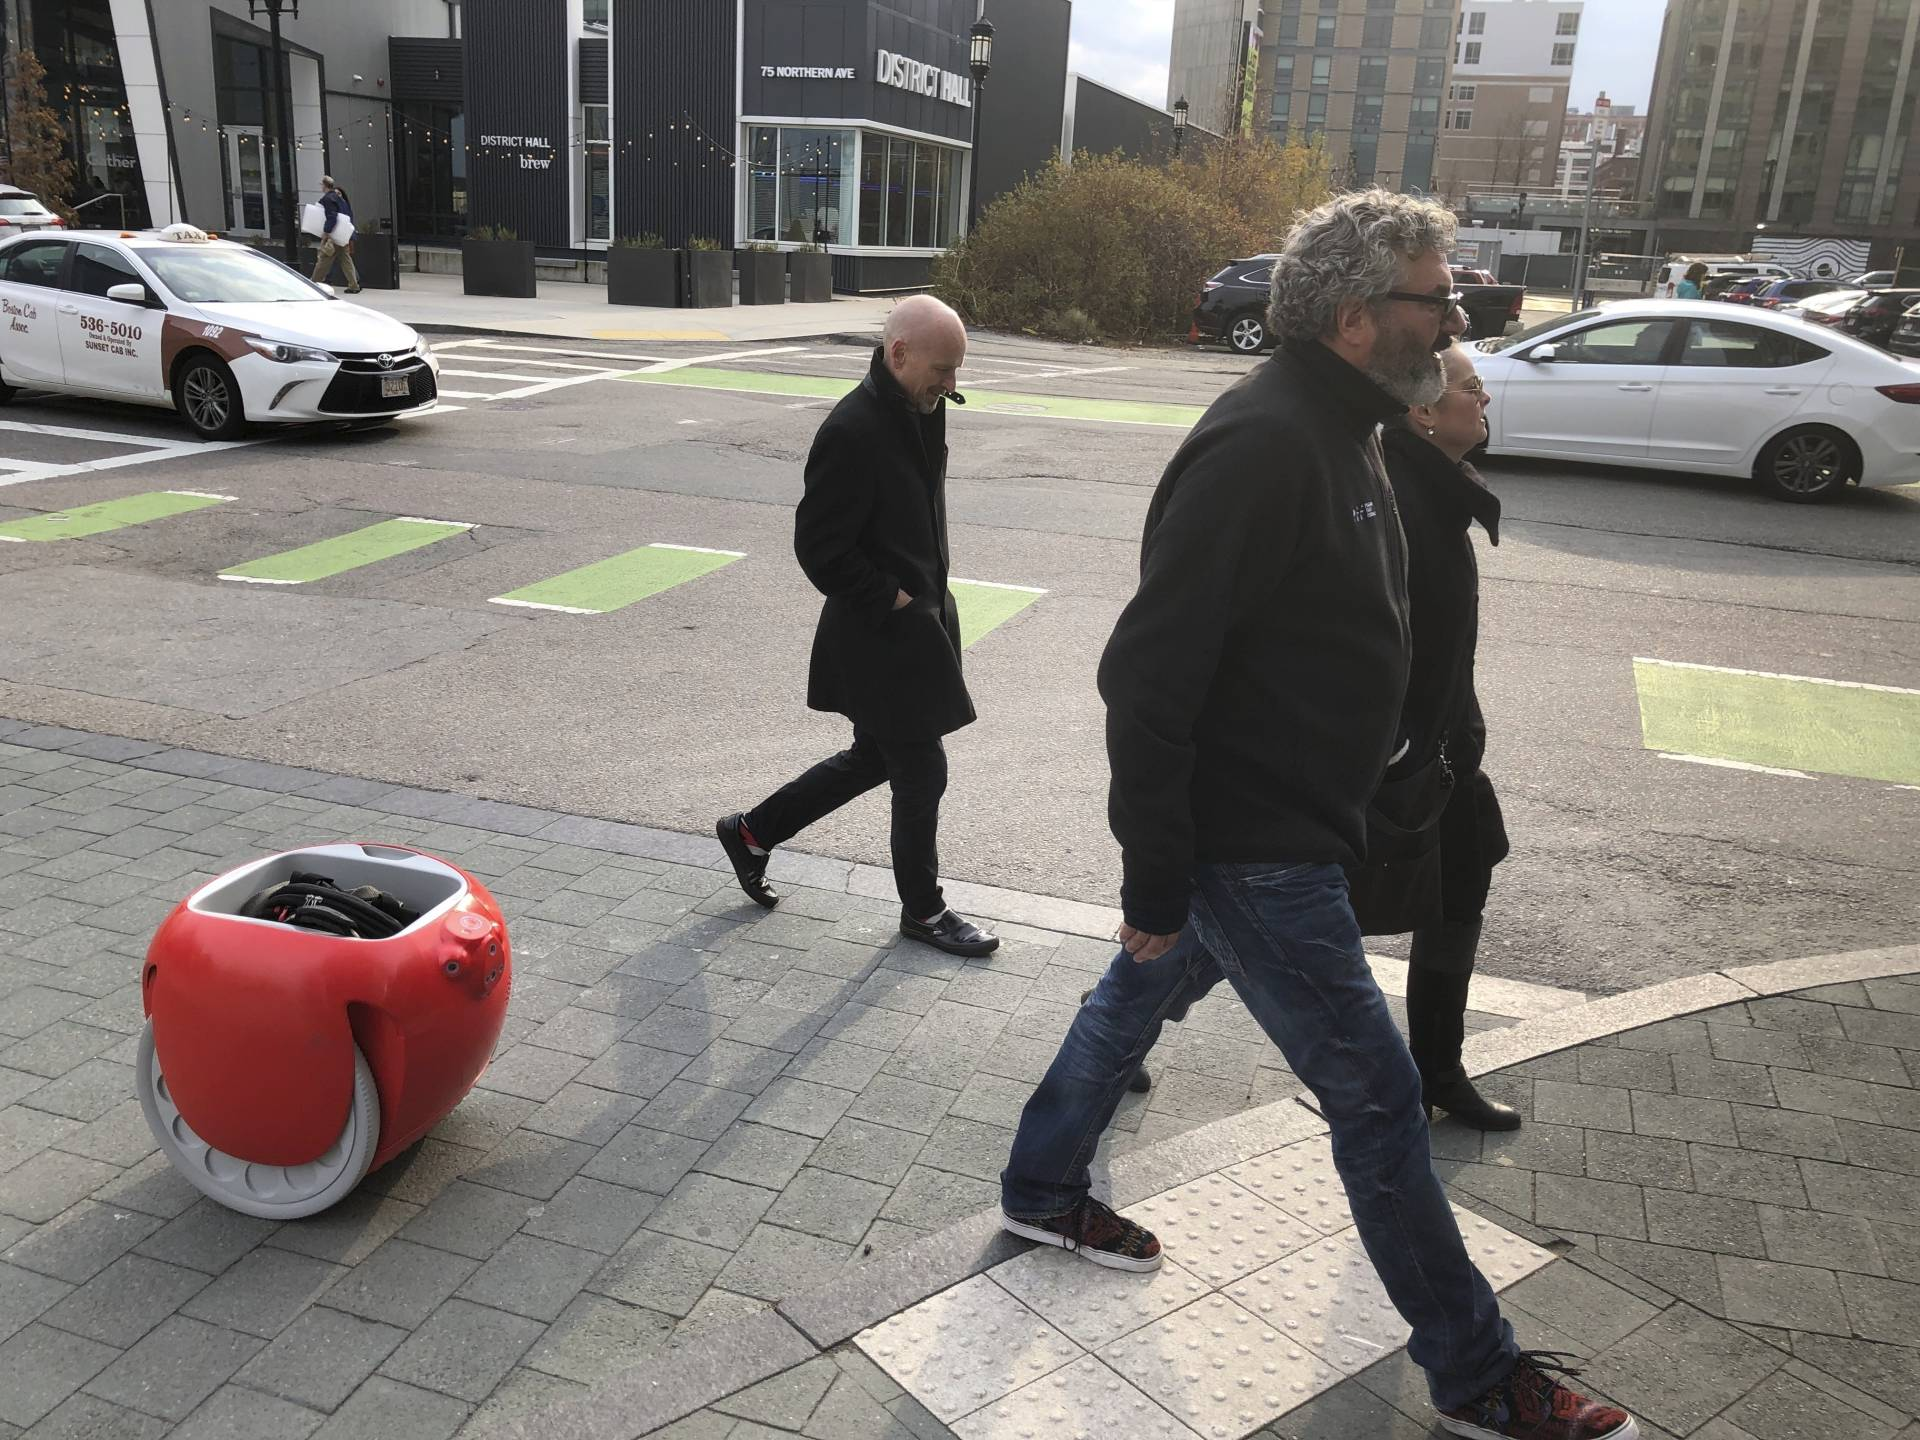 Lynn, center, is followed by his company's Gita carrier robot as he crosses a street in Boston. The two-wheeled machine is carrying a backpack and uses cameras and sensors to track its owner.